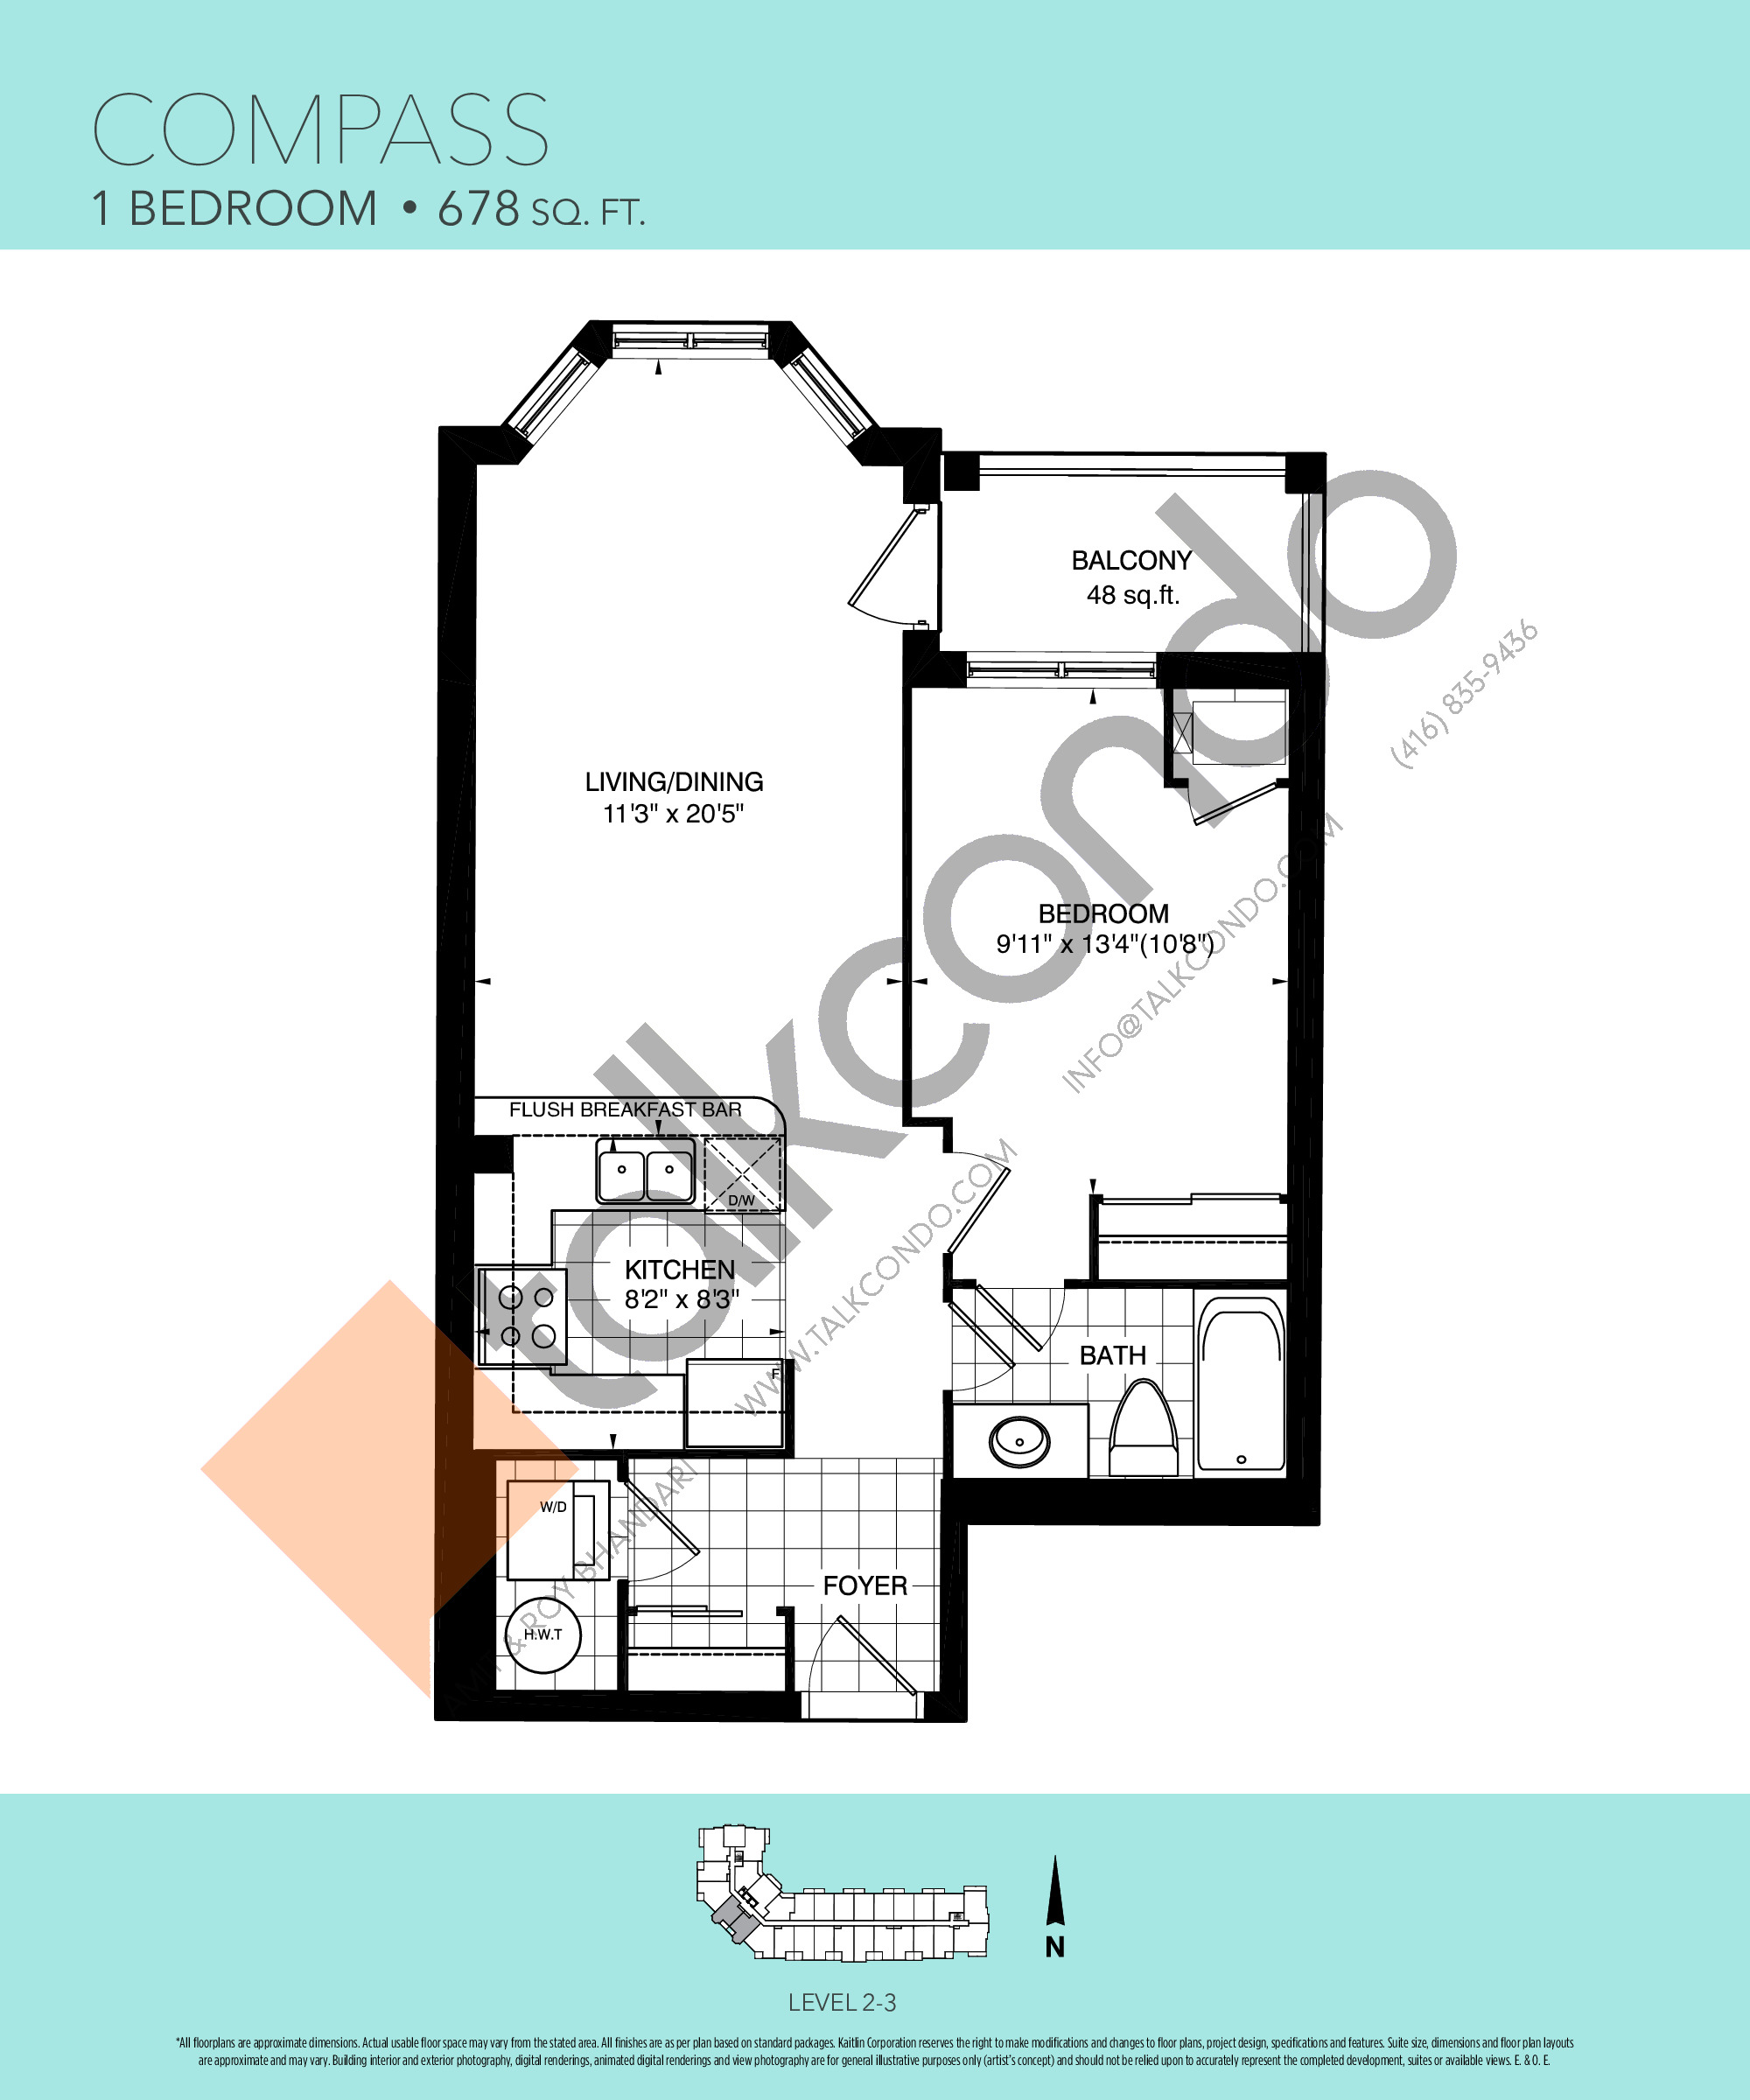 Compass Floor Plan at Harbourview Grand Condos - 678 sq.ft